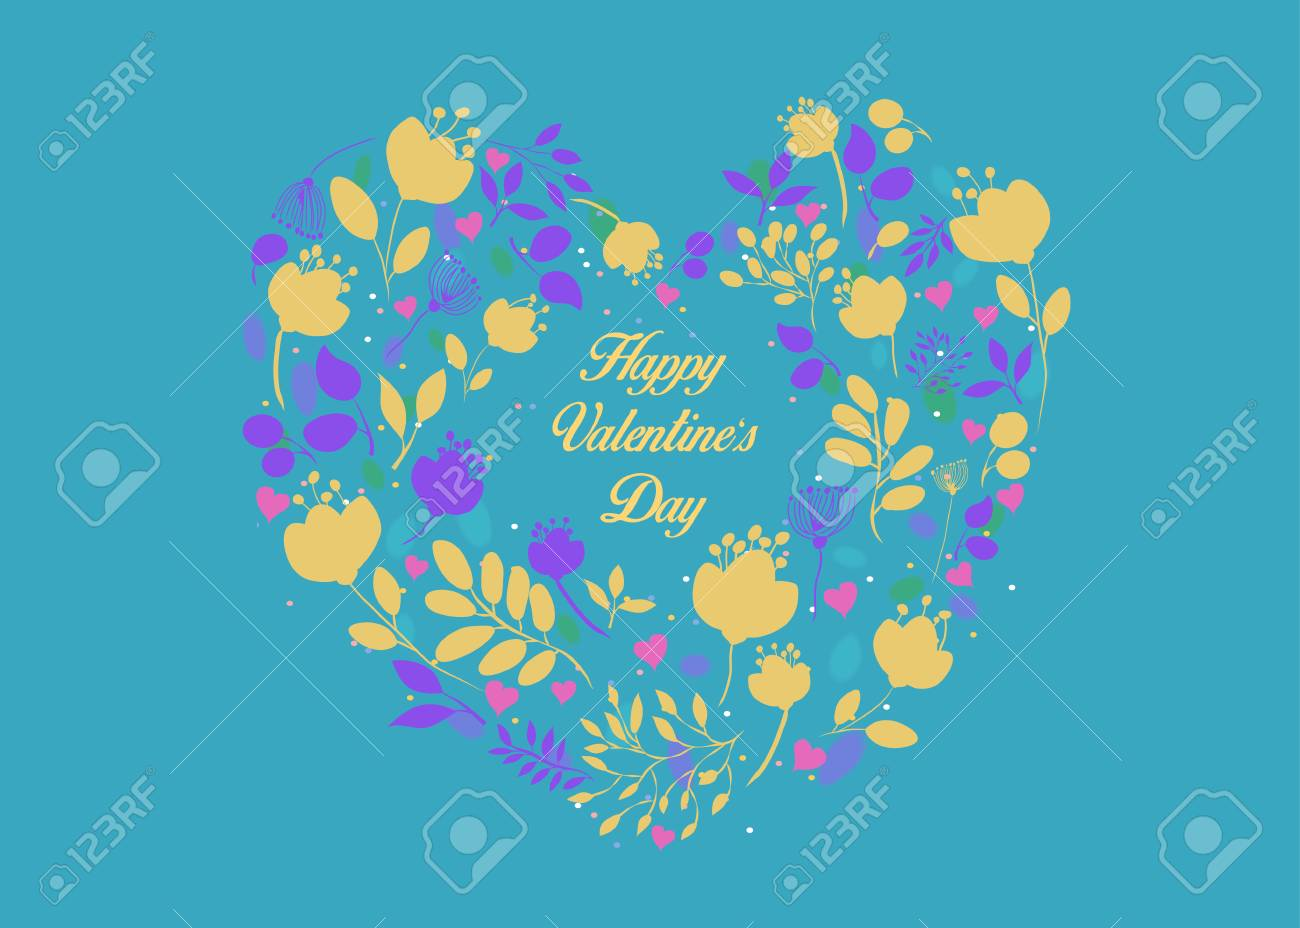 Happy Valentines Day Floral Heart With Small Pink Hearts Yellow